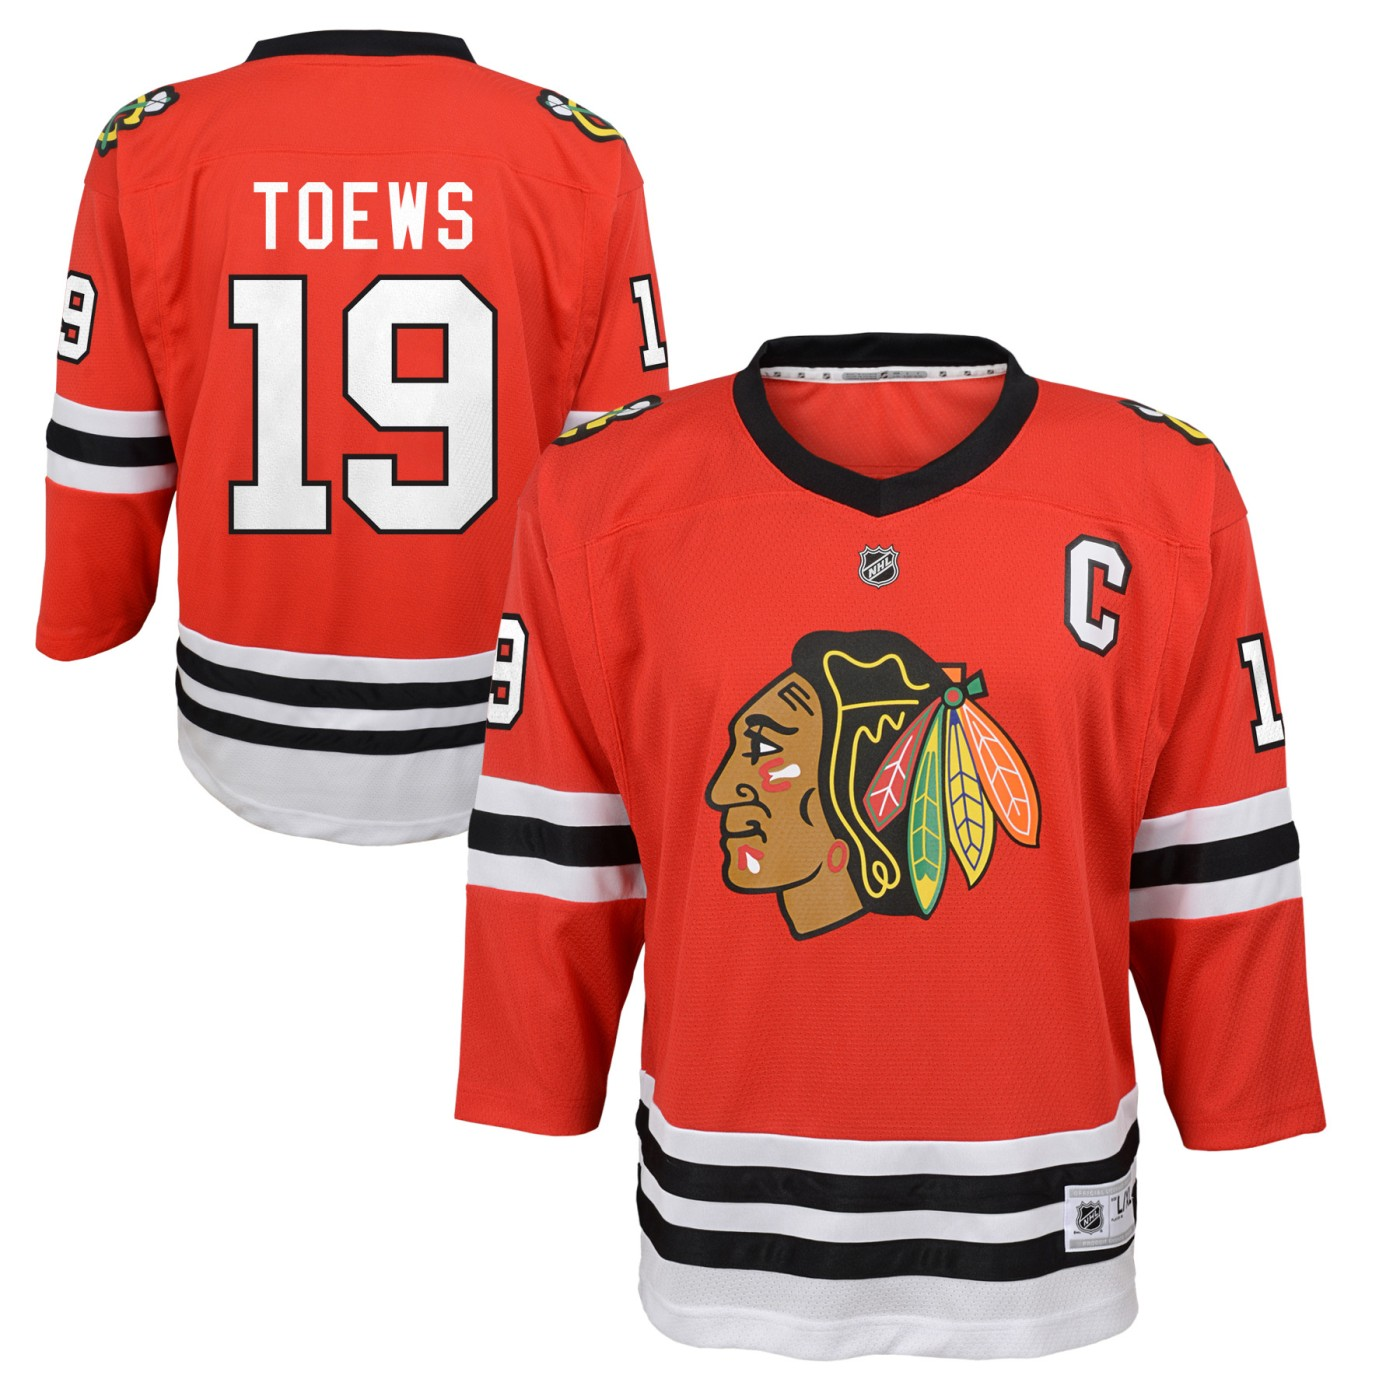 Jonathan Toews Chicago Blackhawks Youth NHL Red Replica Hockey Jersey by Outerstuff